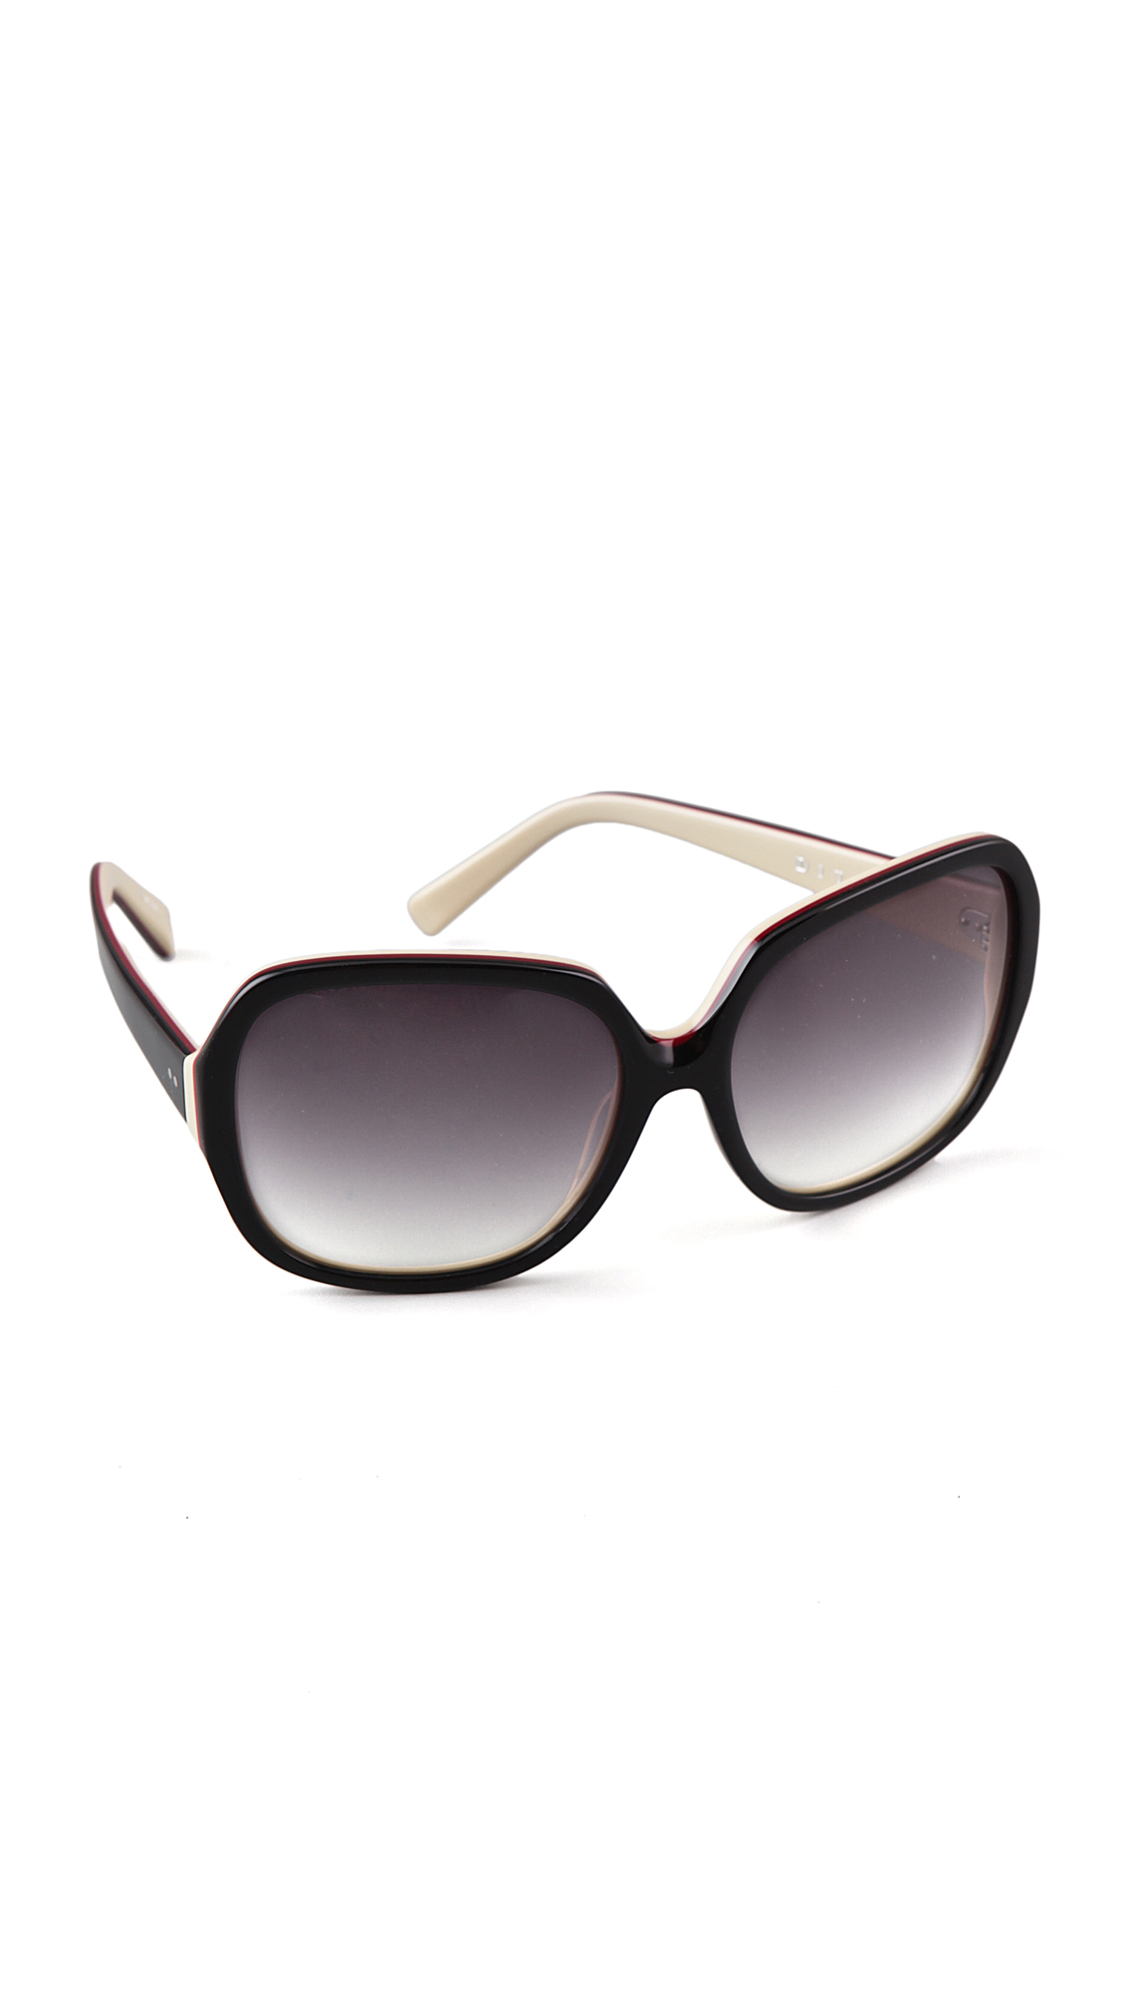 Dita Eyewear Supa Dupa Sunglasses in Black & Cream (Black)